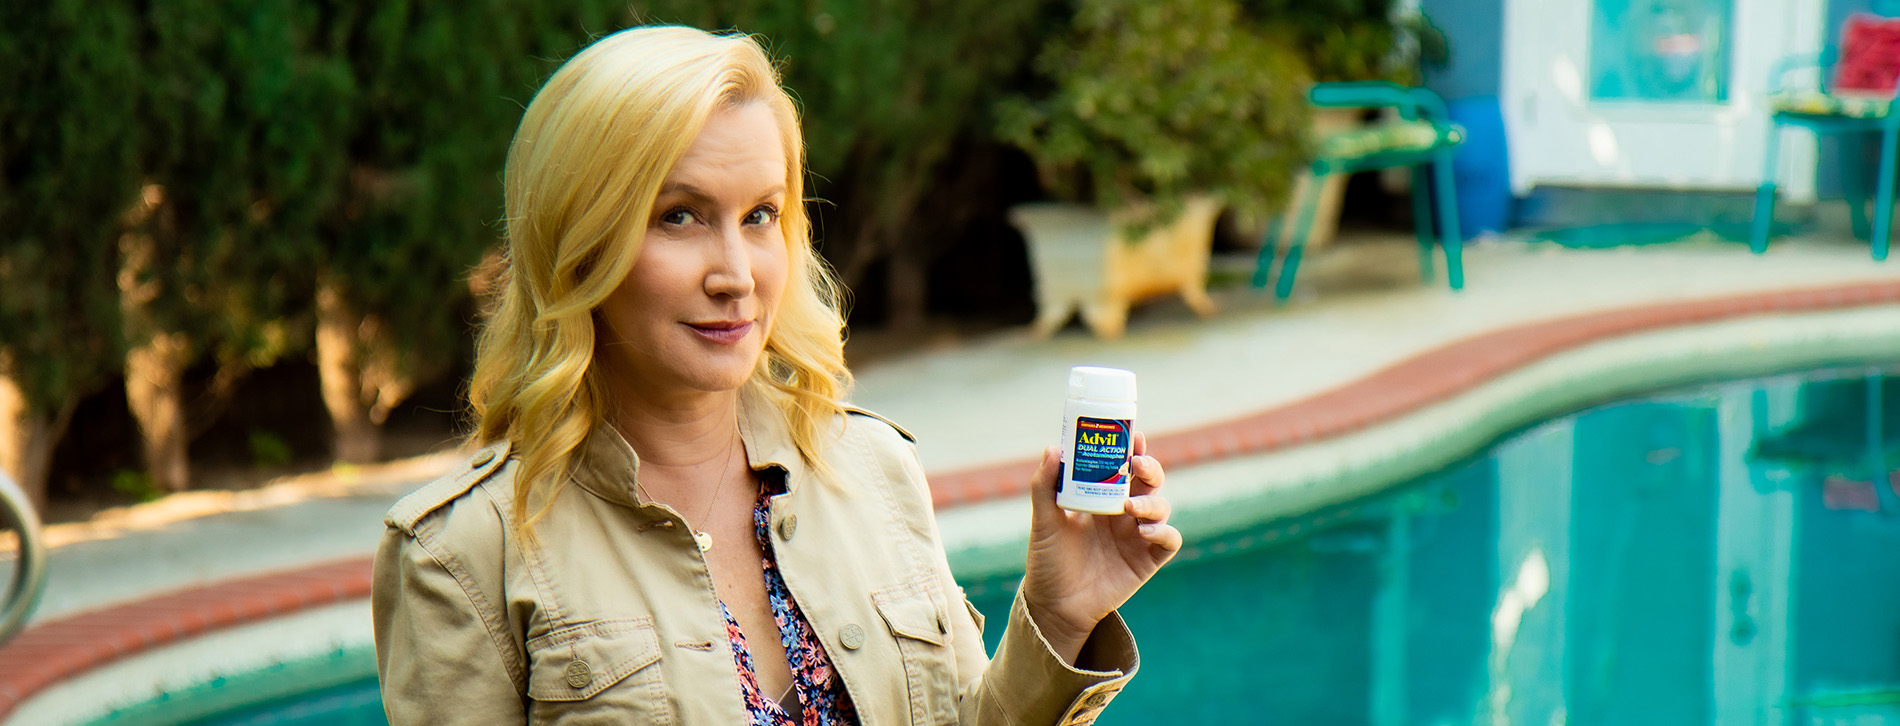 Advil Taps Leading Lady and Super Mom Angela Kinsey for the Launch of Major Pain Innovation, Advil Dual Action